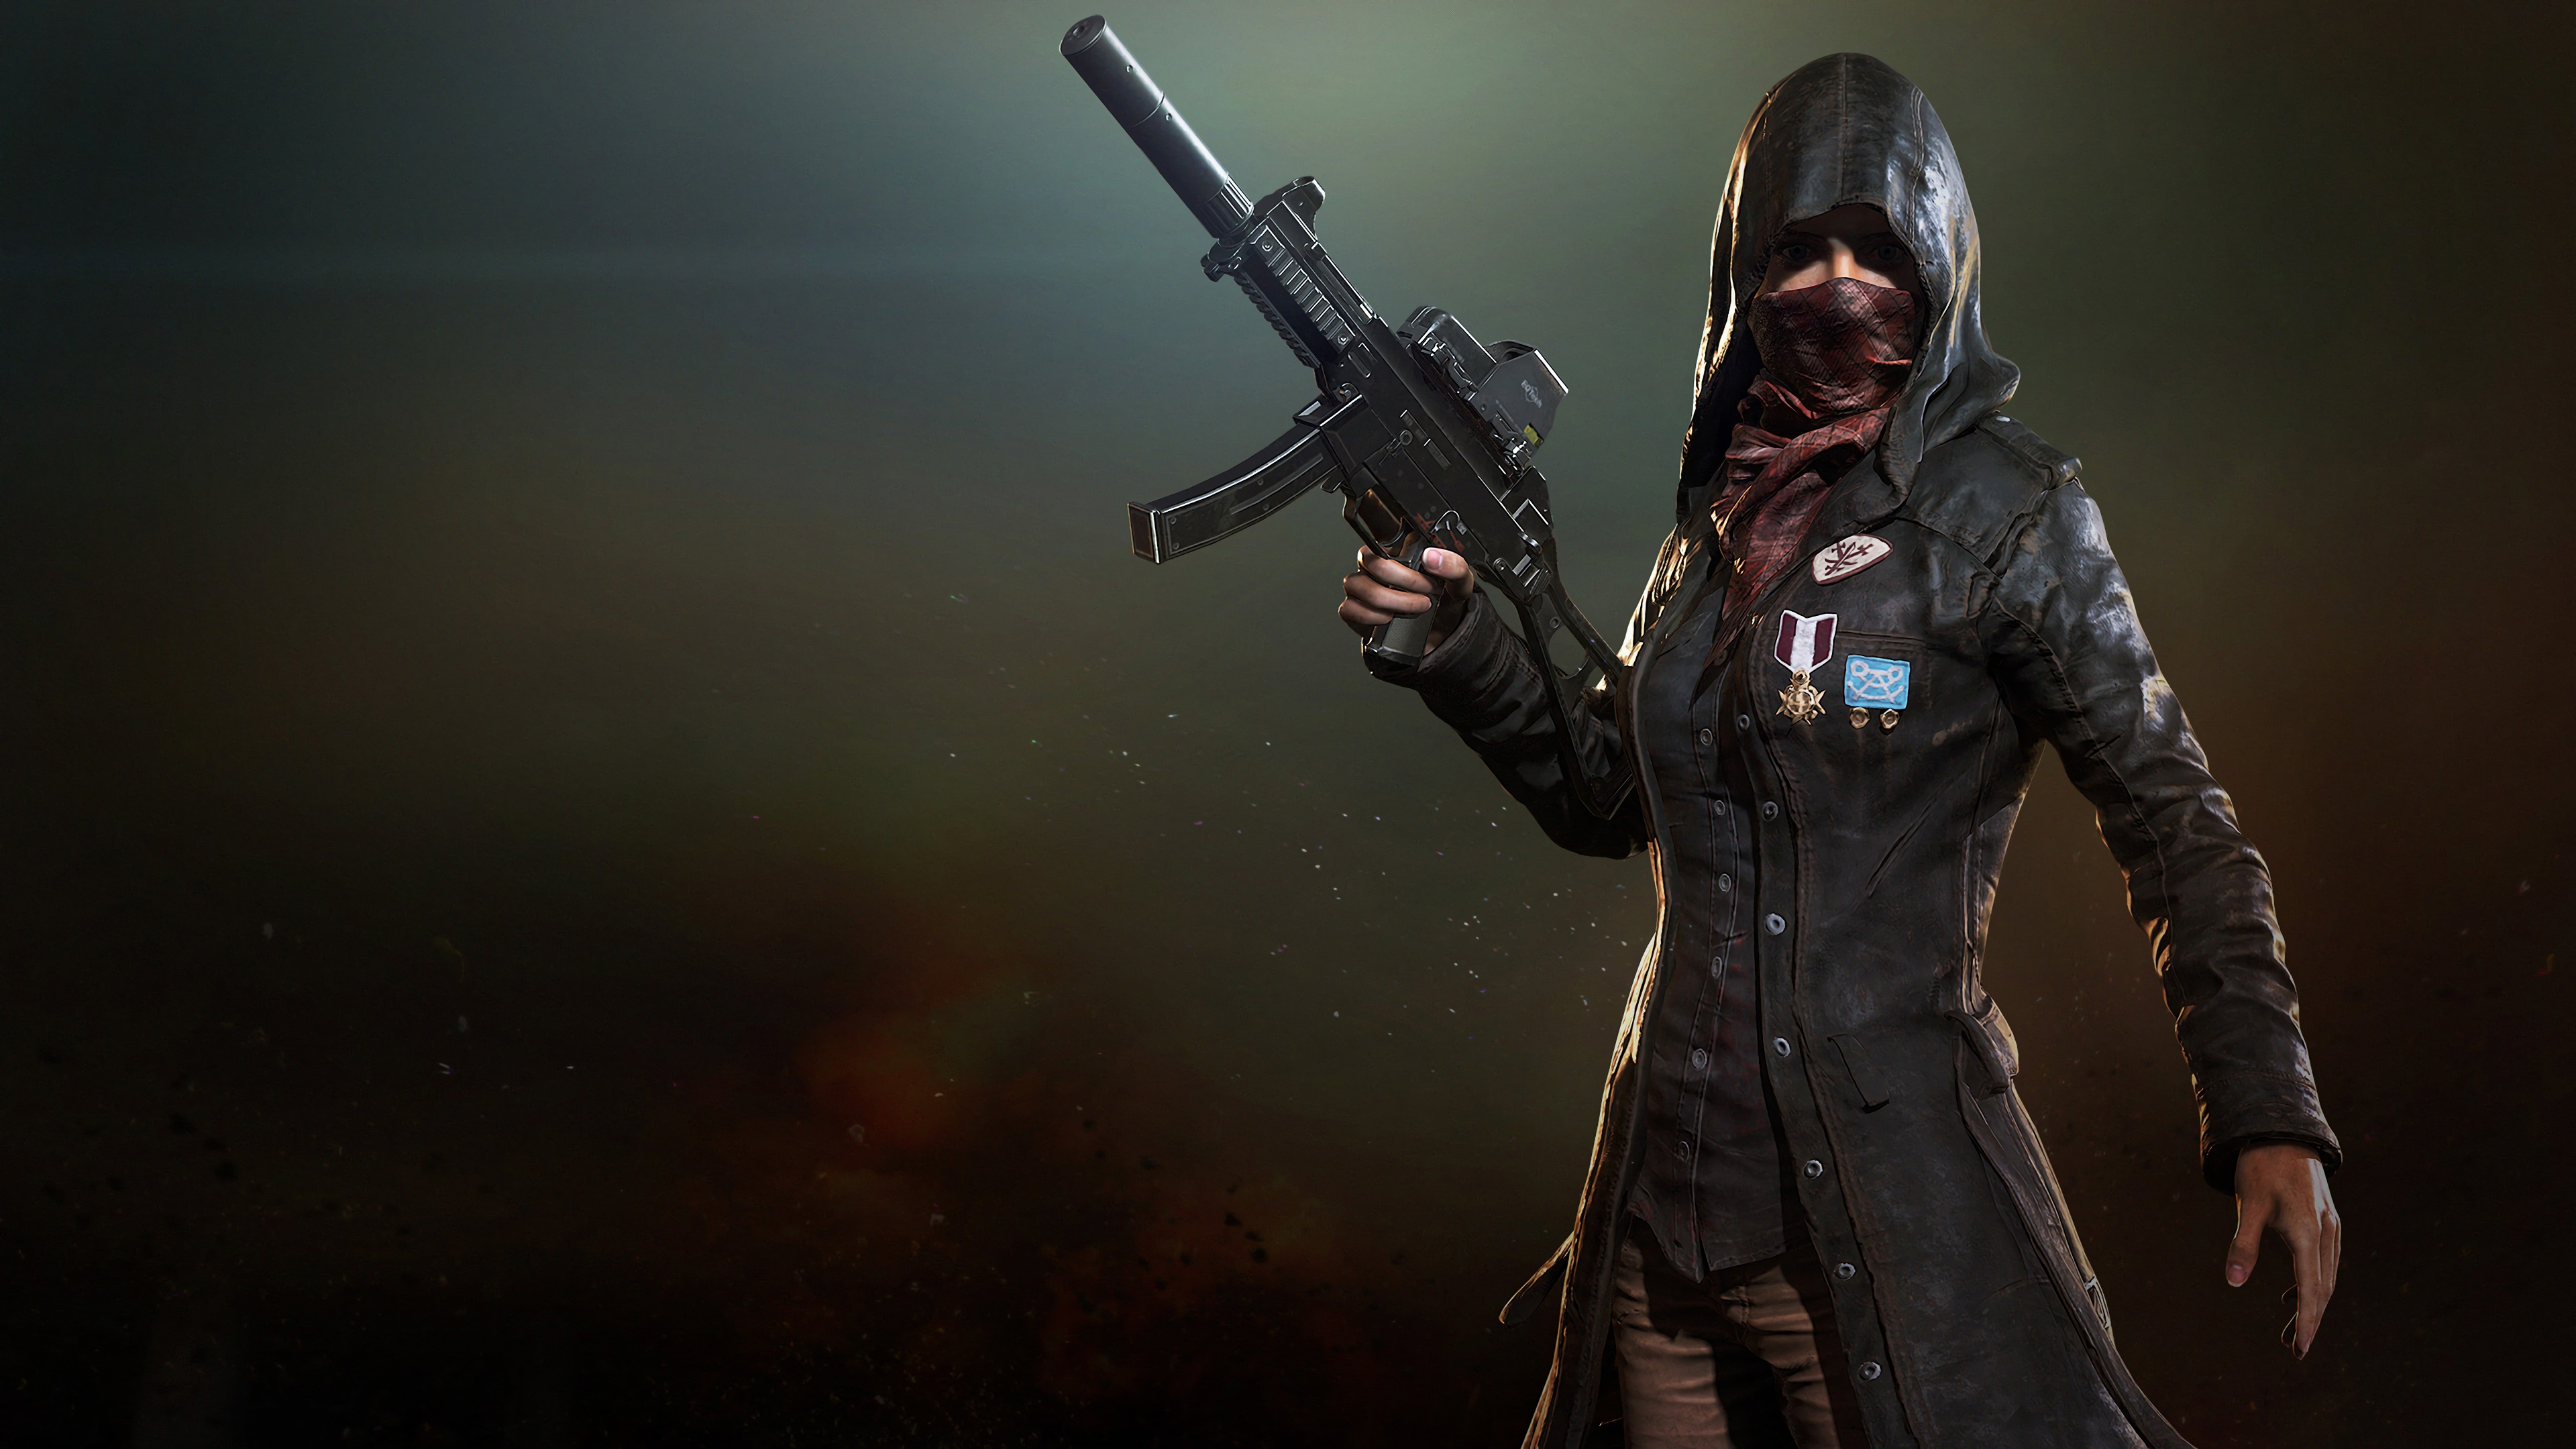 Pubg Squad Wallpaper 4k: Pubg Trenchcoat Girl 4k, HD Games, 4k Wallpapers, Images